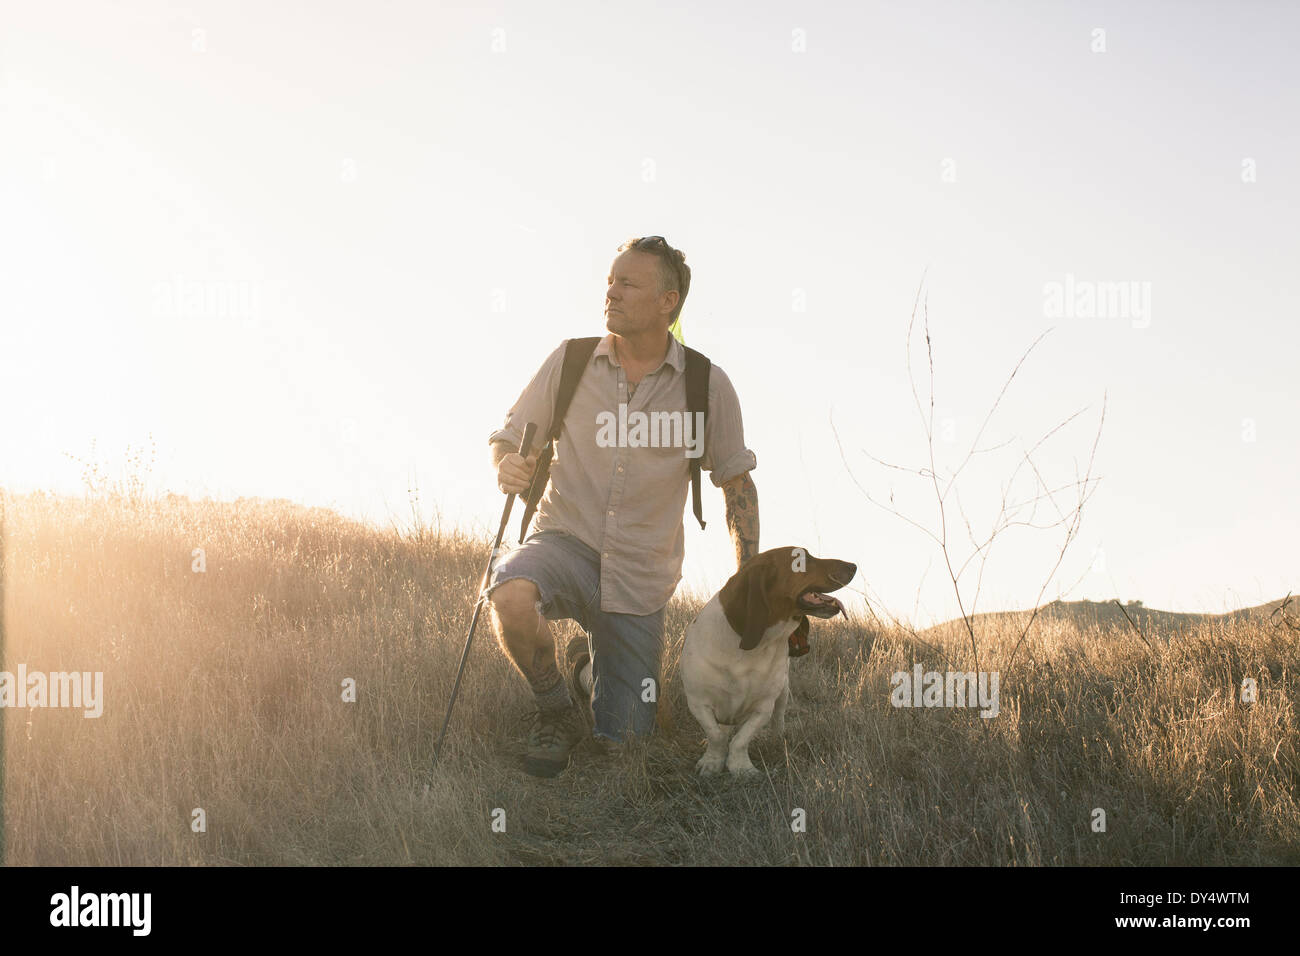 Mature man and his basset hound taking a break from hiking in Santa Monica Mountains, California, USA - Stock Image